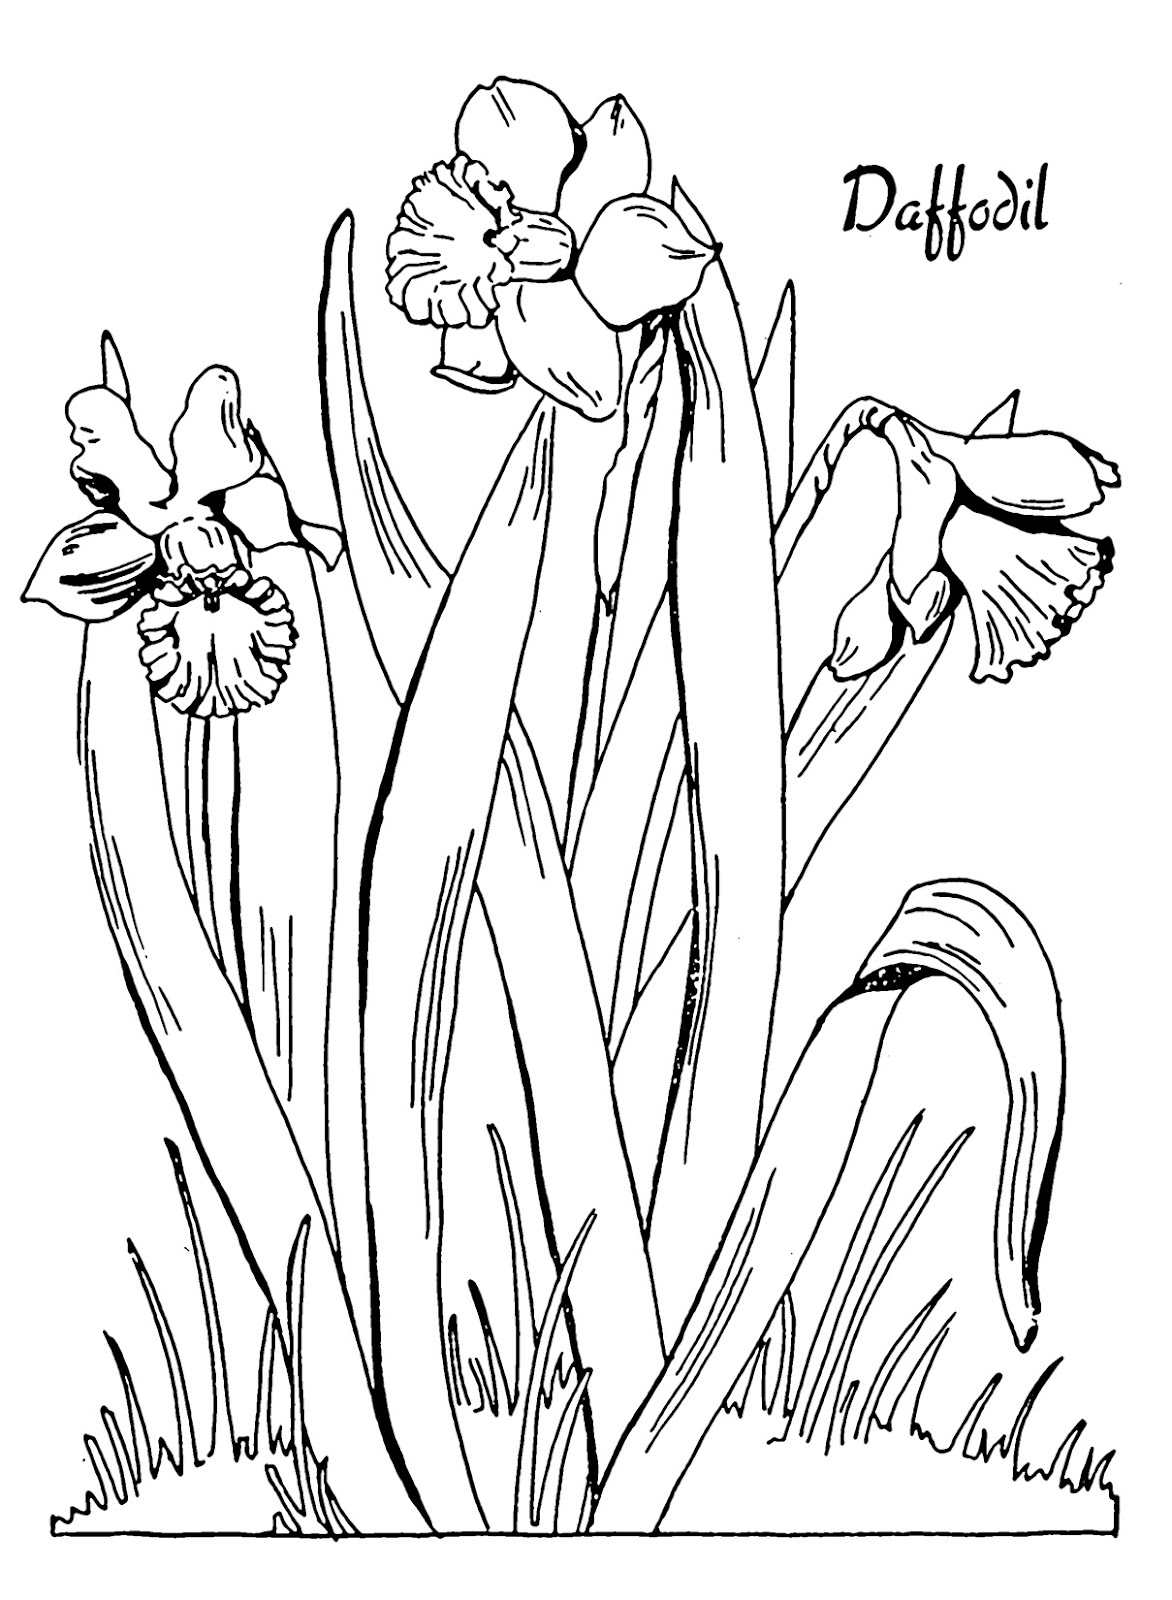 Kids Printable Daffodil Coloring Page the Graphics Fairy Download Of Daffodil Coloring Pages Gallery